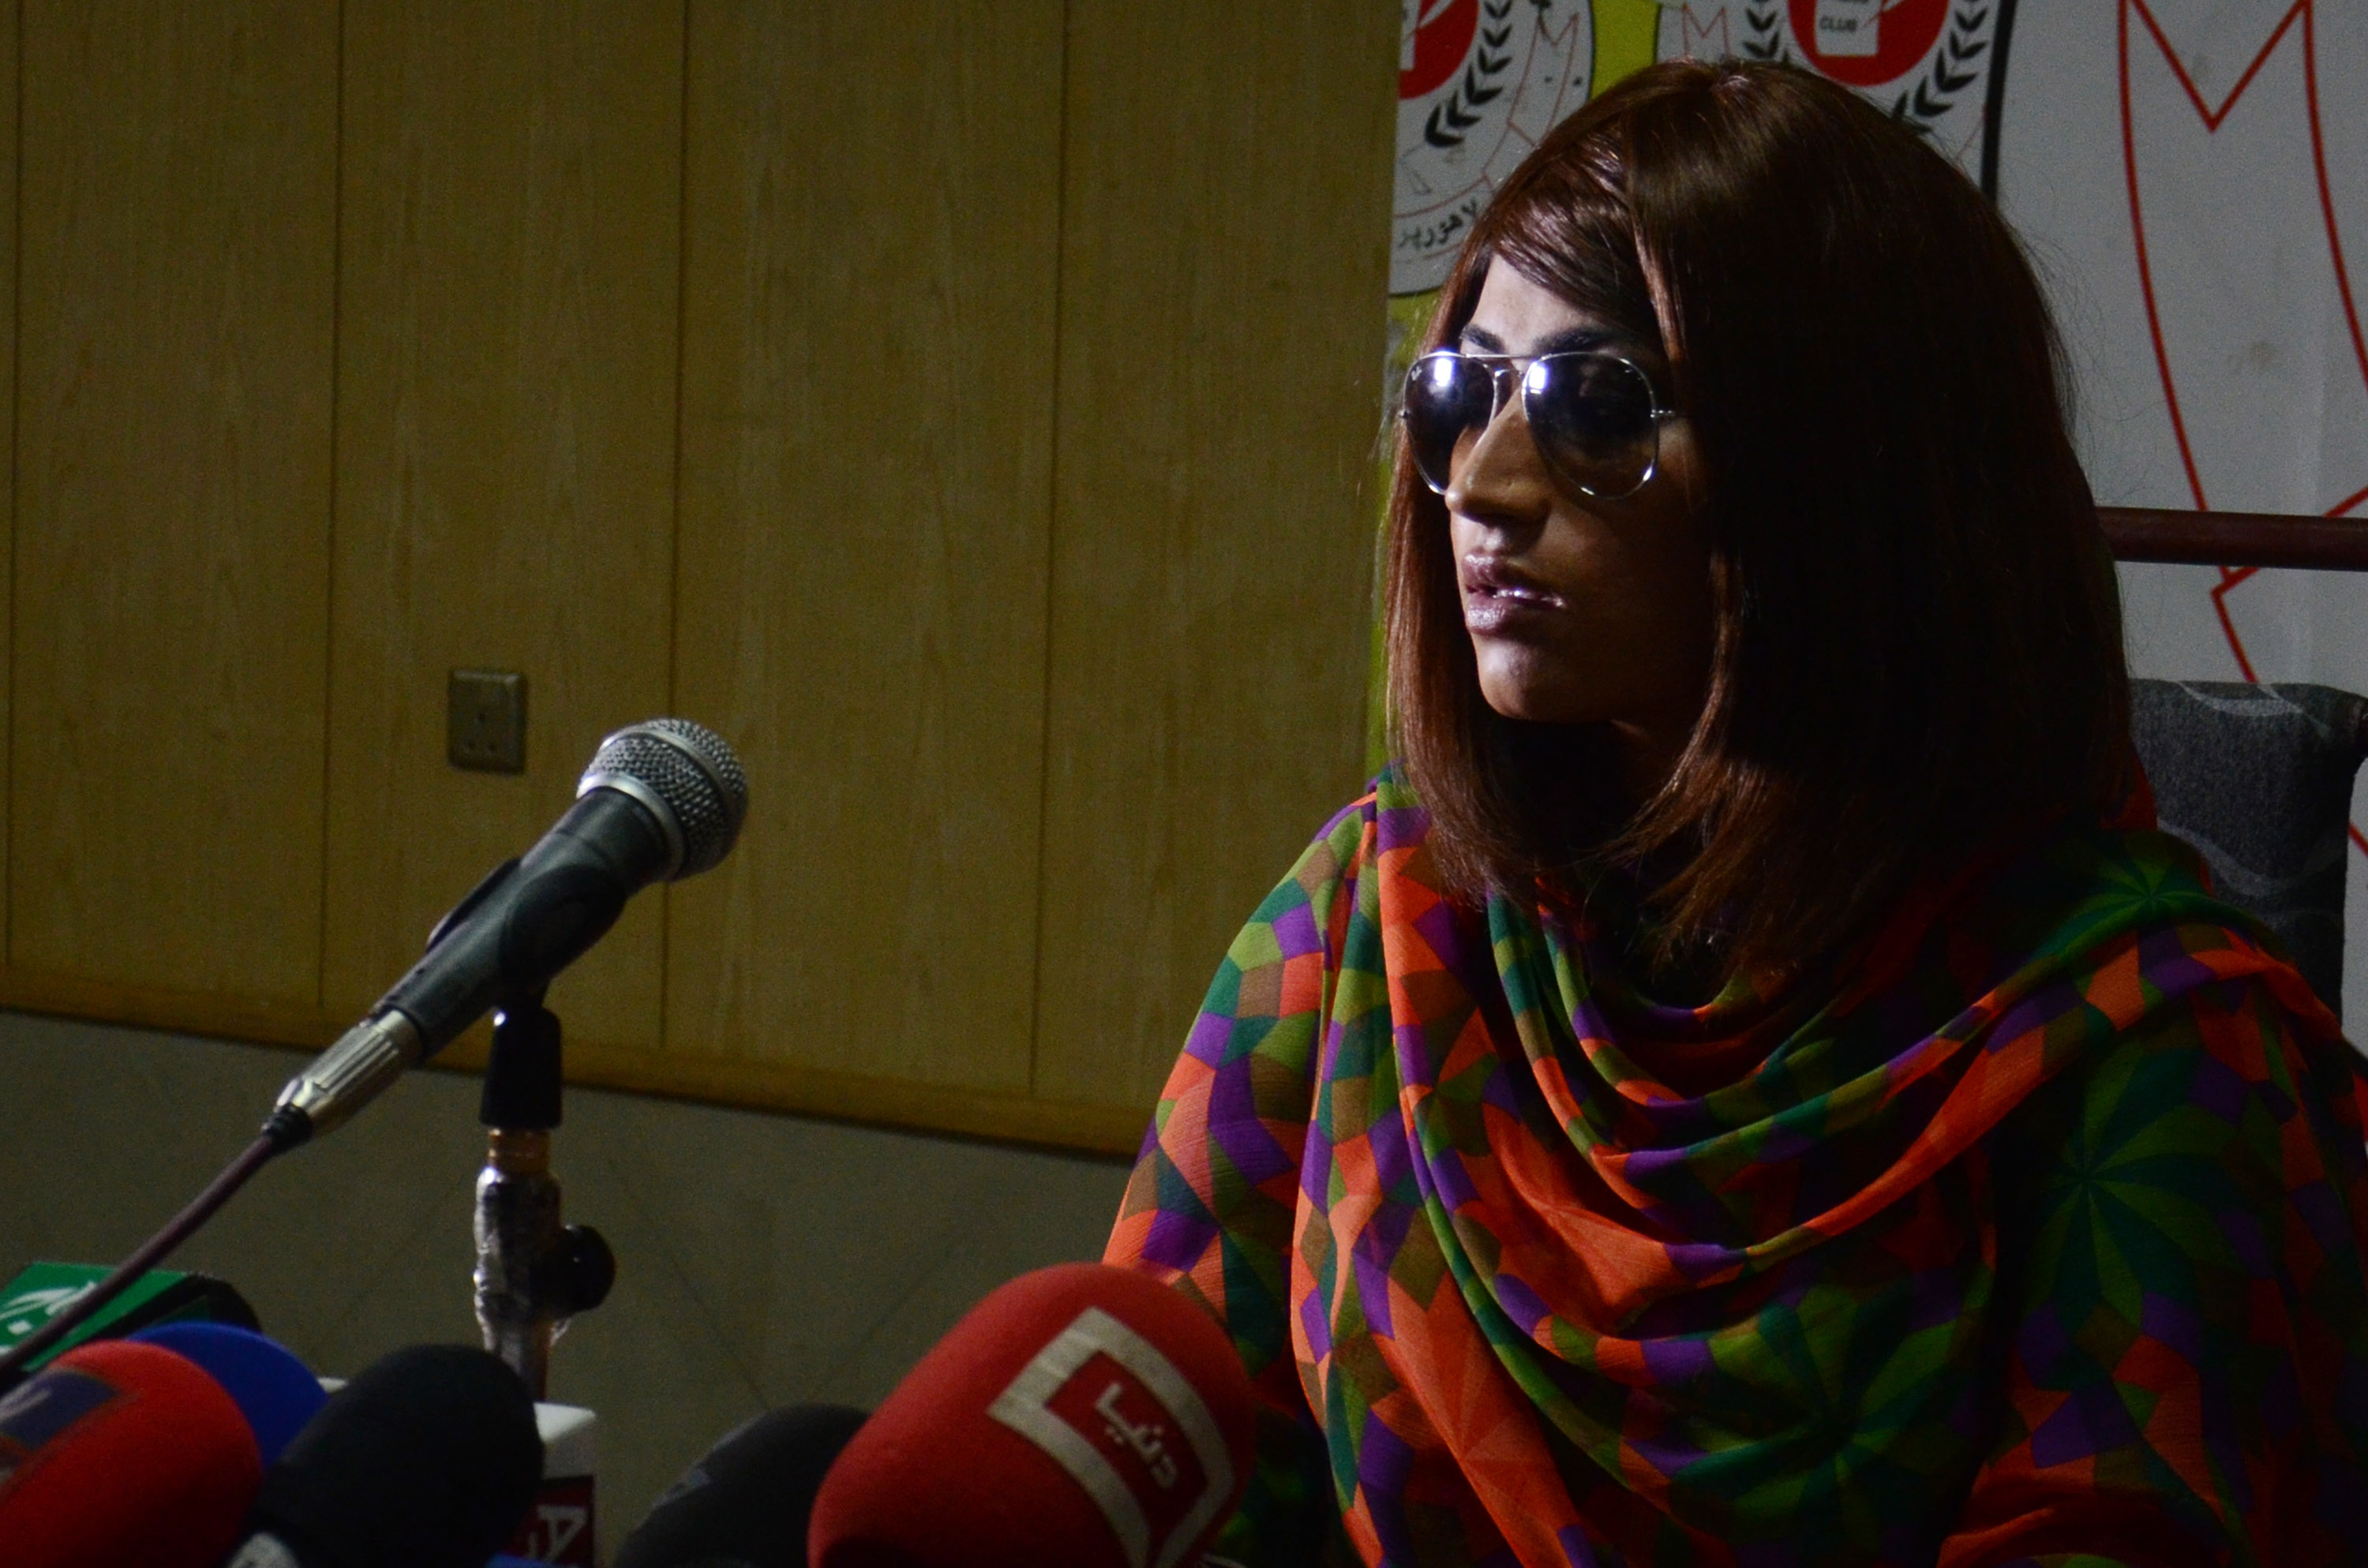 Late Pakistani actress and model Qandeel Baloch addresses the media on June 28, 2016. On July 15, 2016, her brother killed her because  she was bringing dishonor to [his] family.